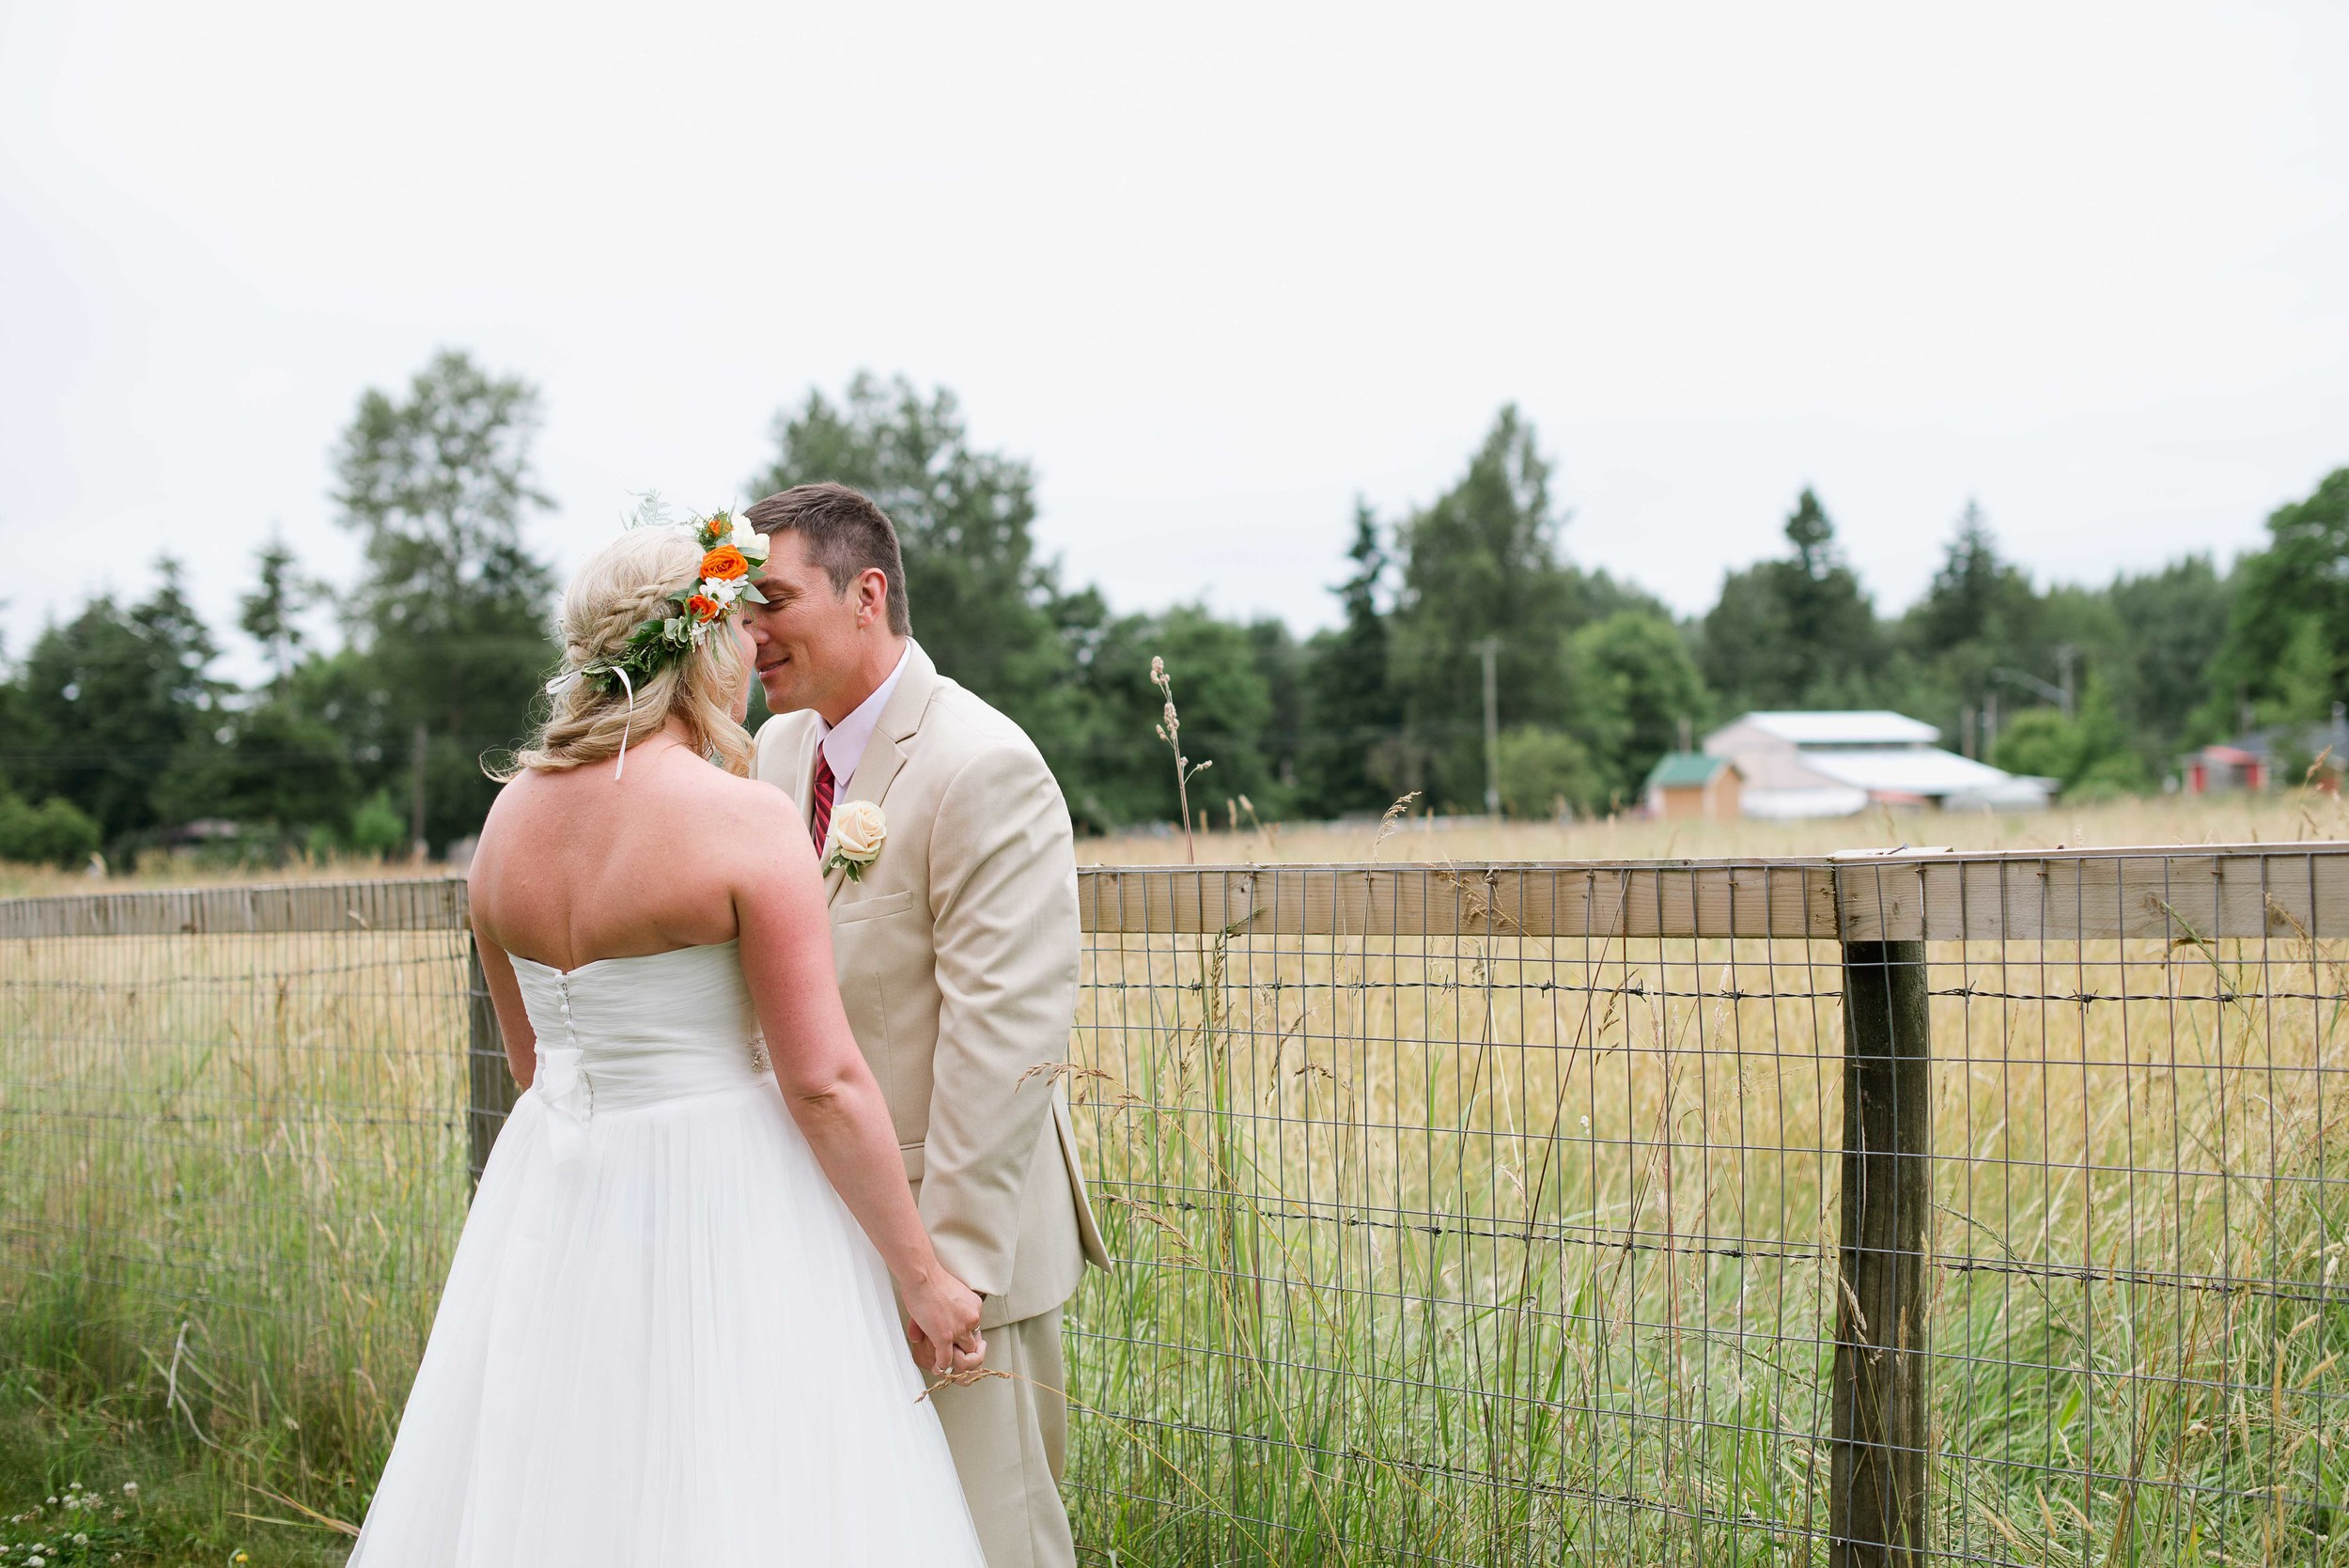 Langley_Wedding_Second Shooting_Photography_Vancouver-12.jpg